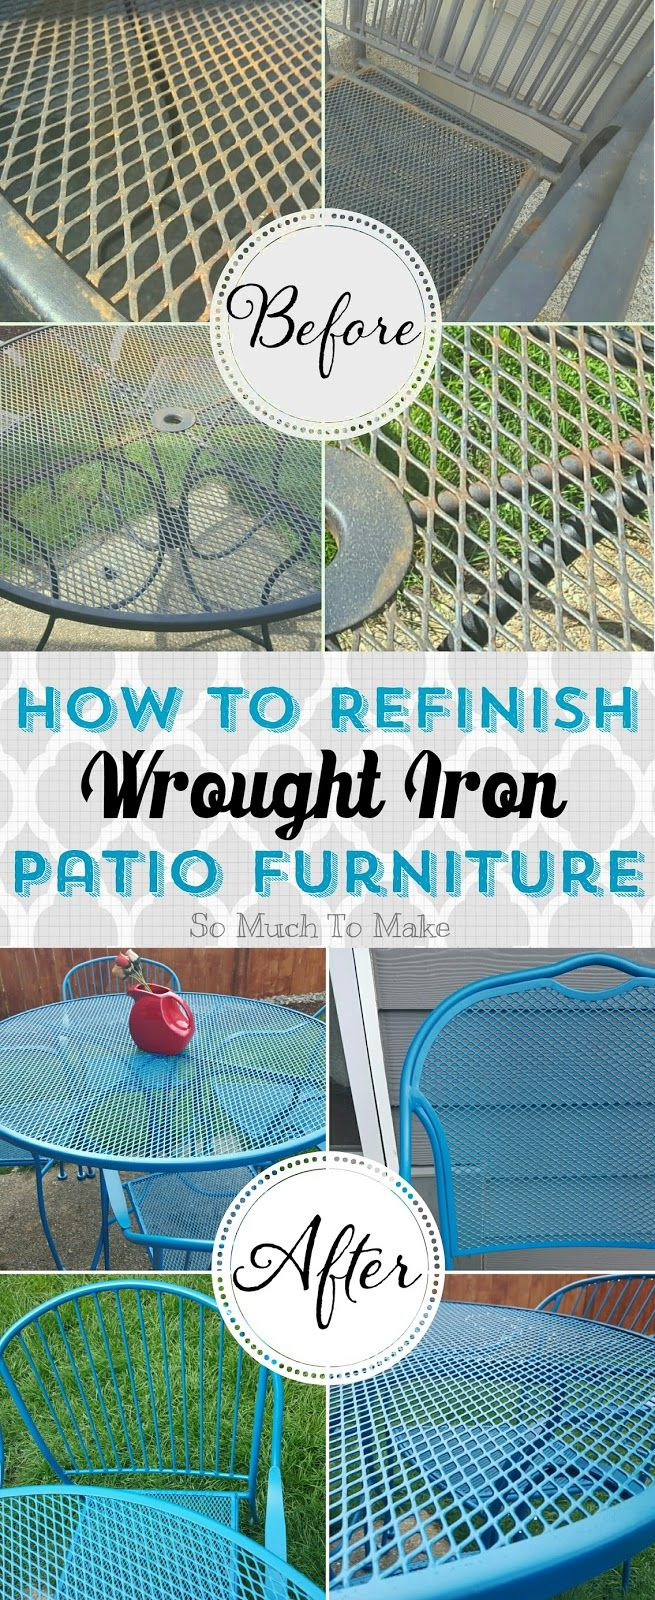 how to refinish wrought iron patio